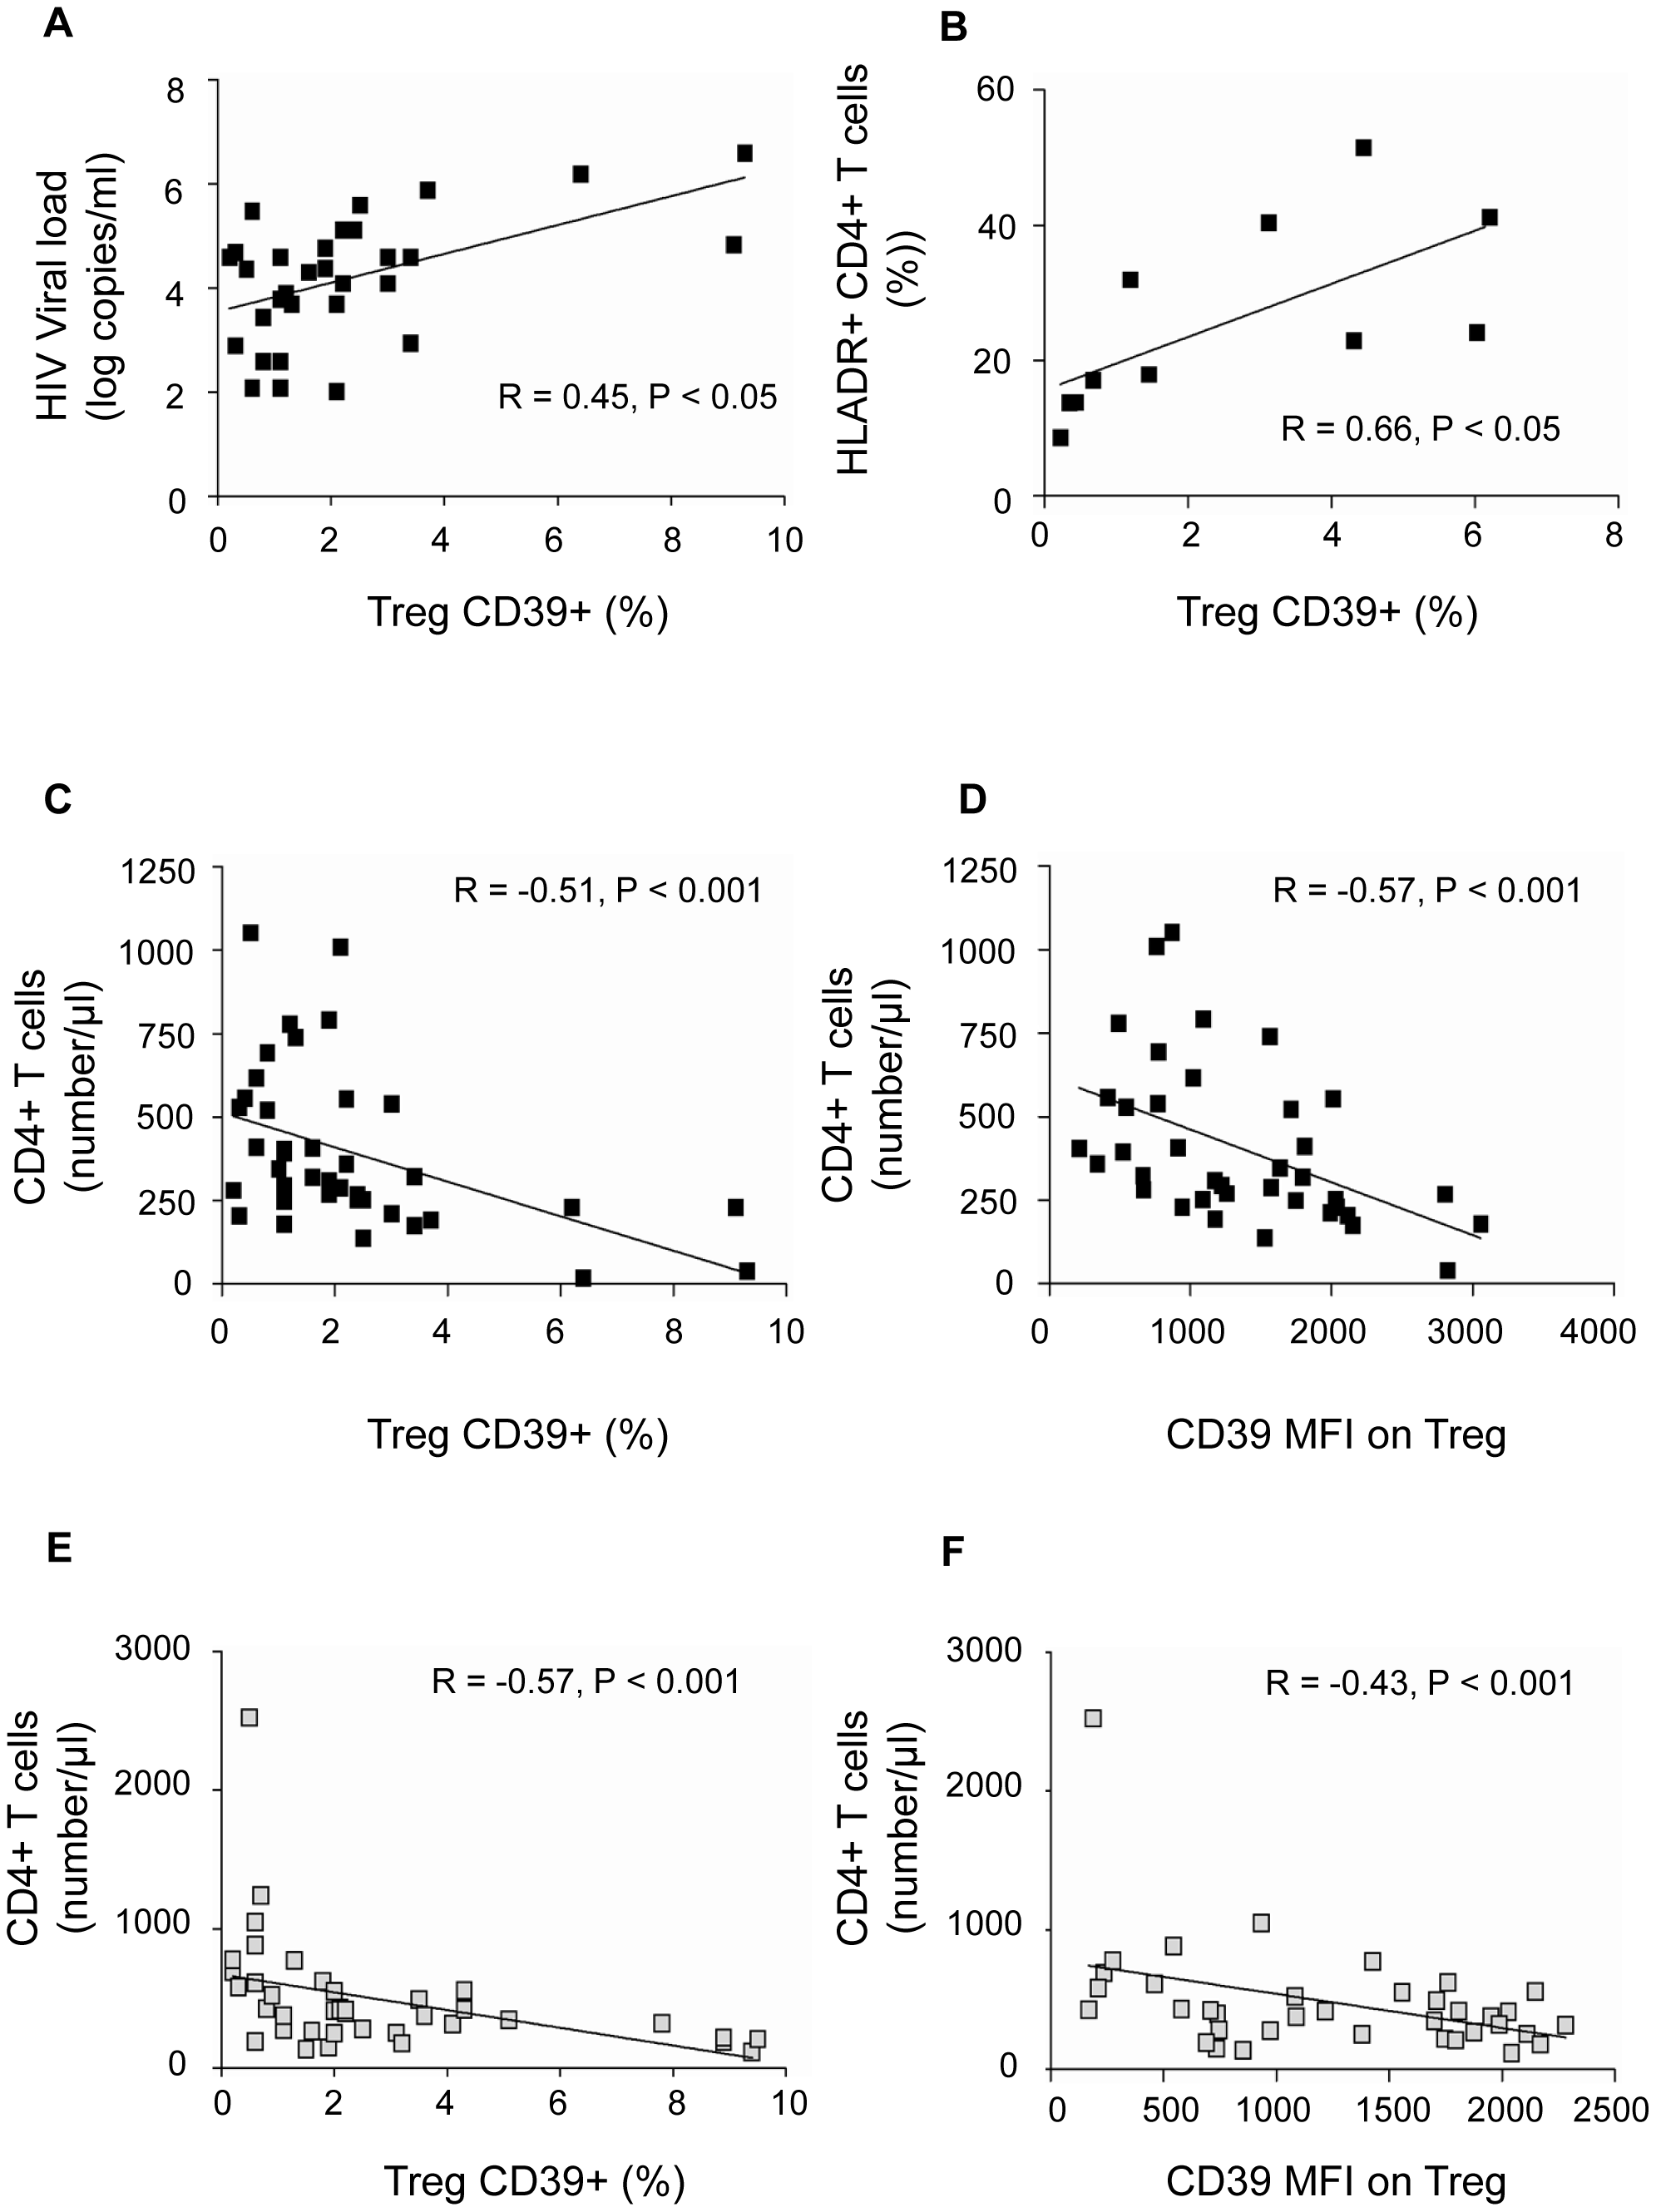 CD39 expression on Treg correlates positively with viral load and T cell activation and negatively with CD4+ T cell count in HIV-1 positive subjects.